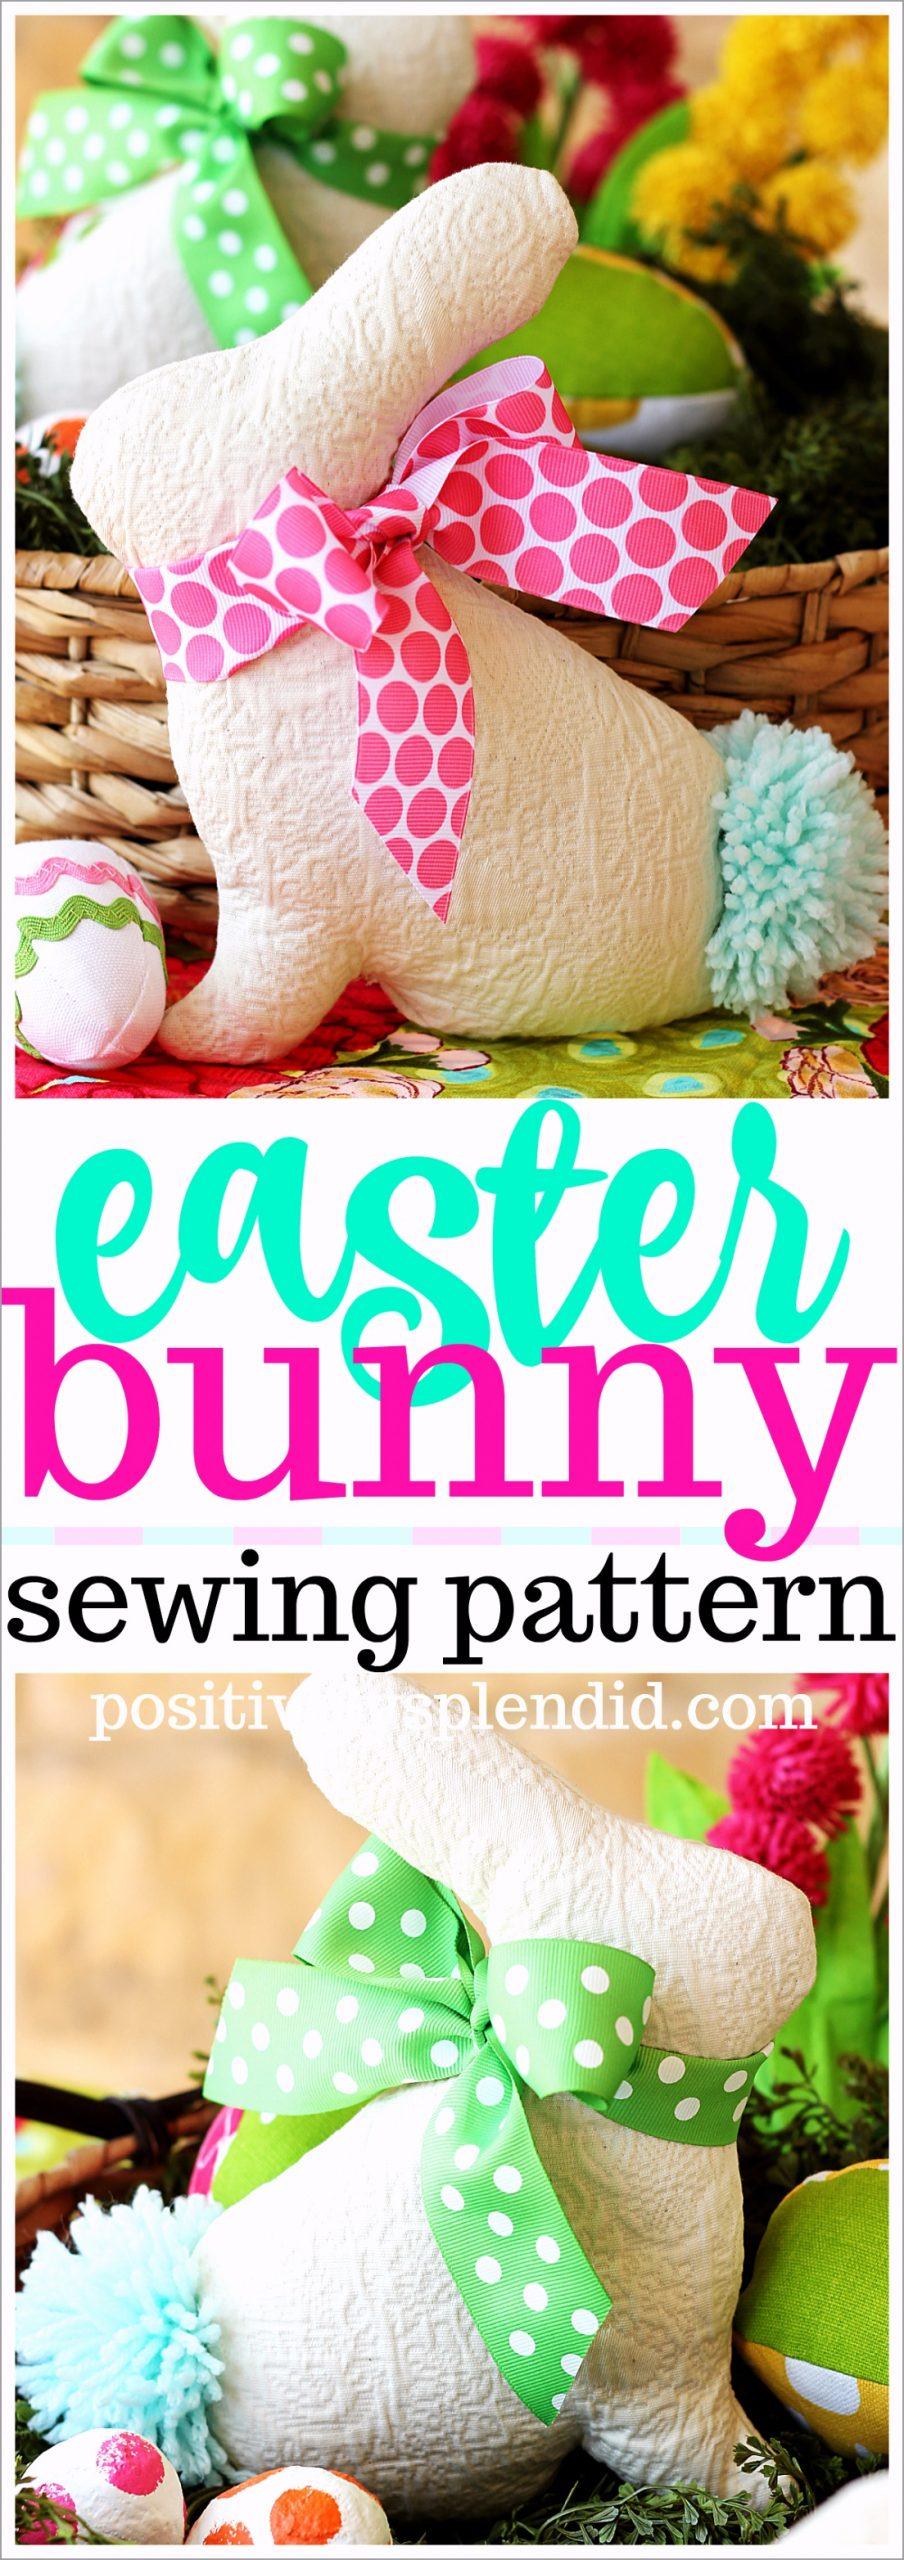 Easter Bunny Sewing Pattern Title iieha